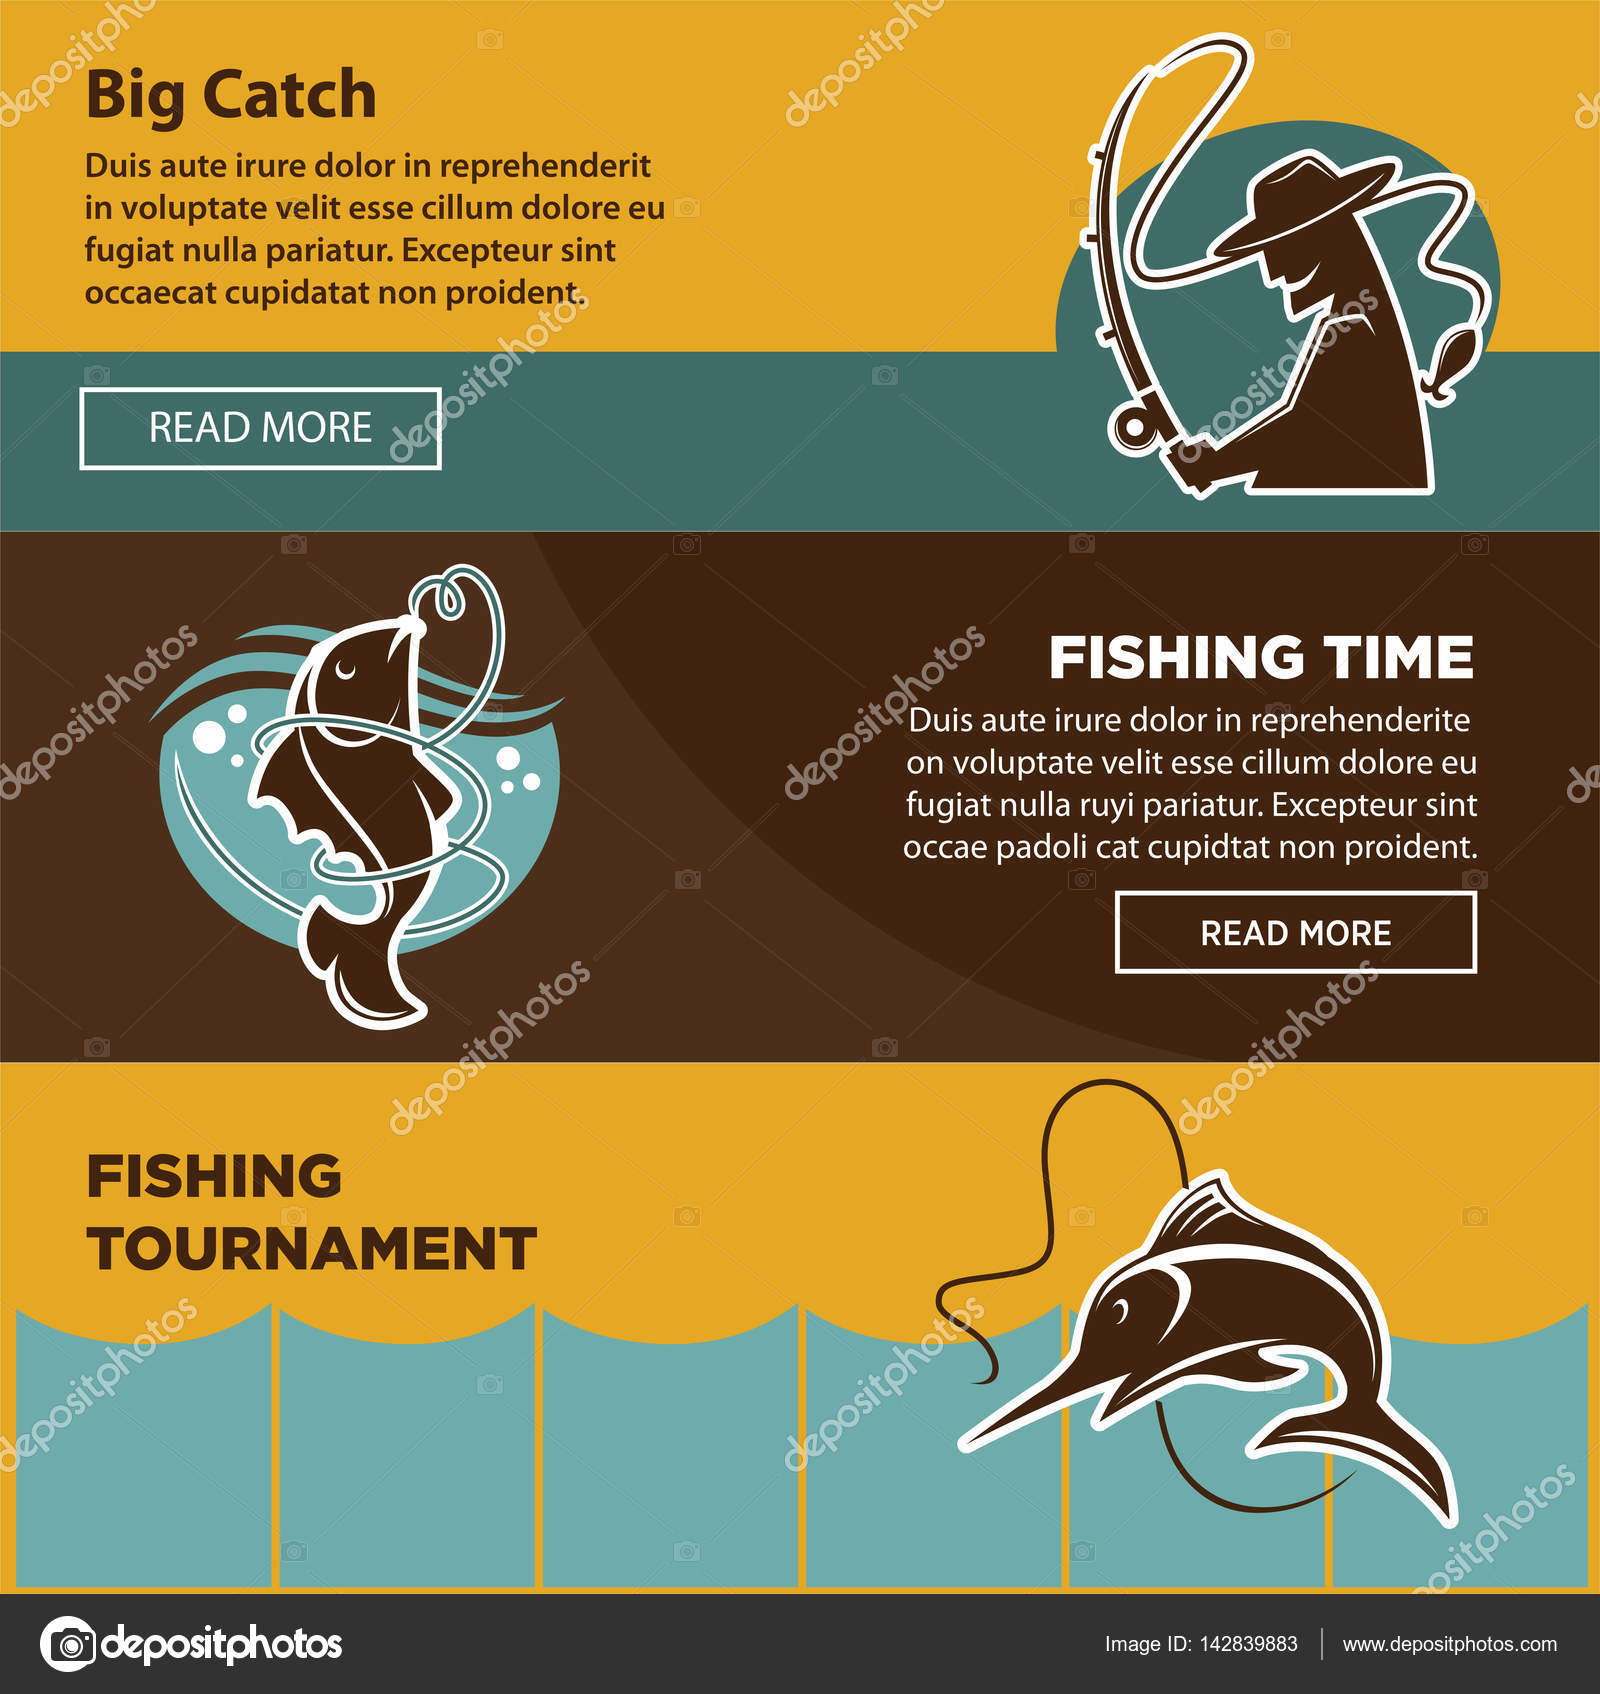 Fishing tournament time for big catch colorful poster stock vector fishing tournament time for big catch colorful poster stock vector saigontimesfo